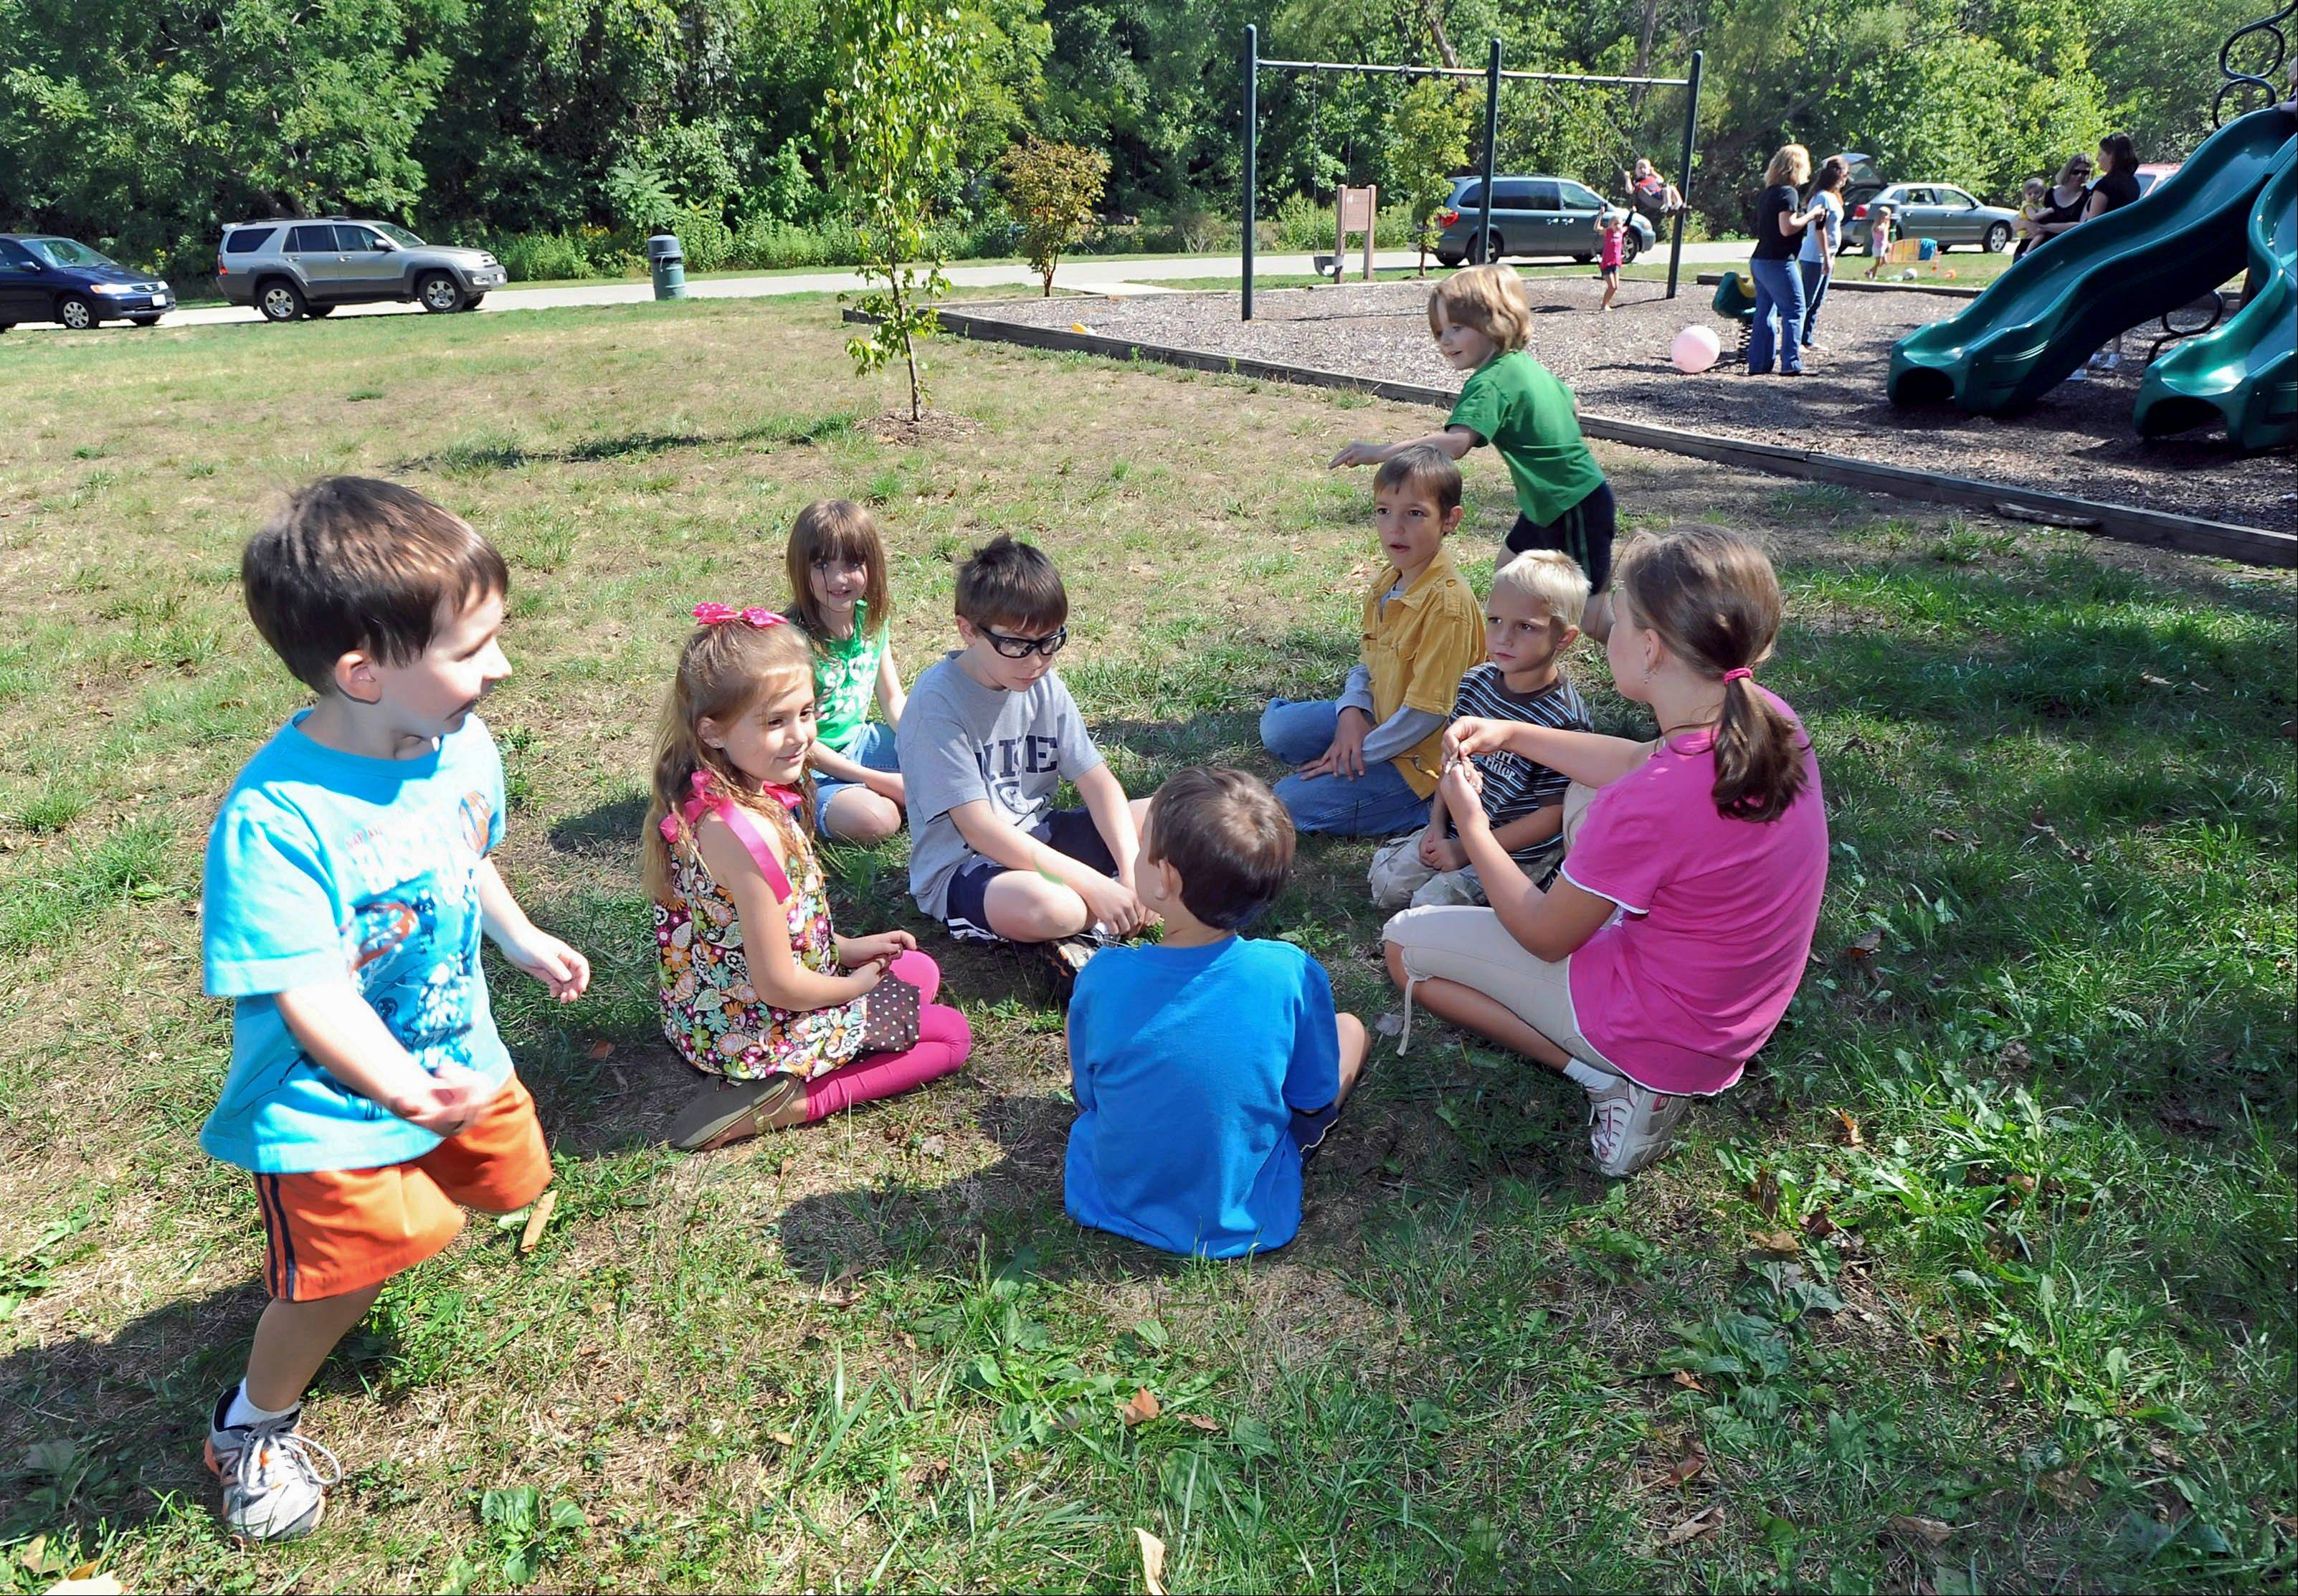 Home-schooled children from the East Central Illinois Home Educators Network play duck, duck, goose during a play day at Kiwanis Park in Charleston, Ill. ECIHEN is a home-school support group with more than 40 member families. The organization officially meets once a month to build relationships among group members, talk about curriculum, see what other families are doing and host social activities.